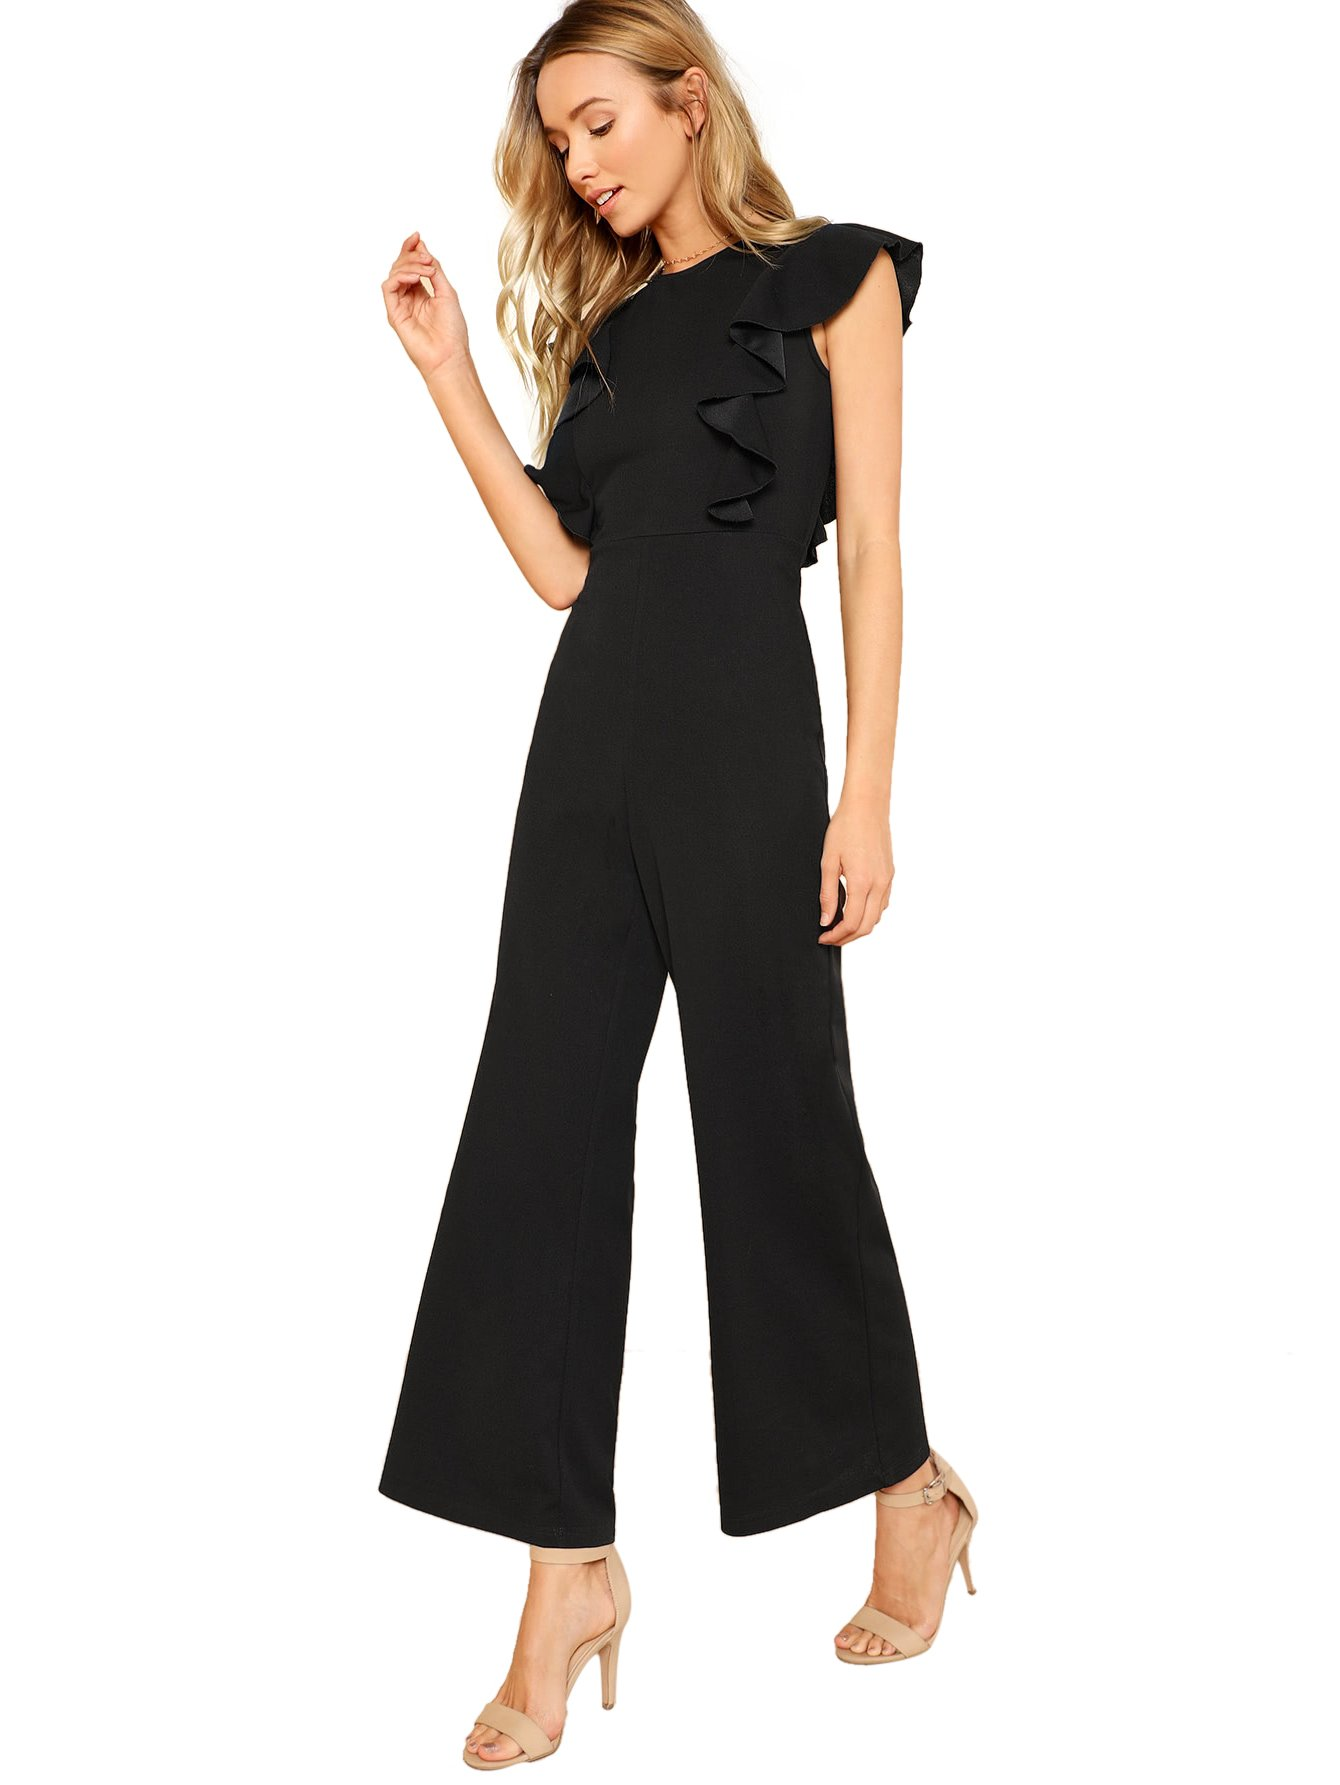 Romwe Women's Sexy Casual Sleeveless Ruffle Trim Wide Leg High Waist Long Jumpsuit Black S